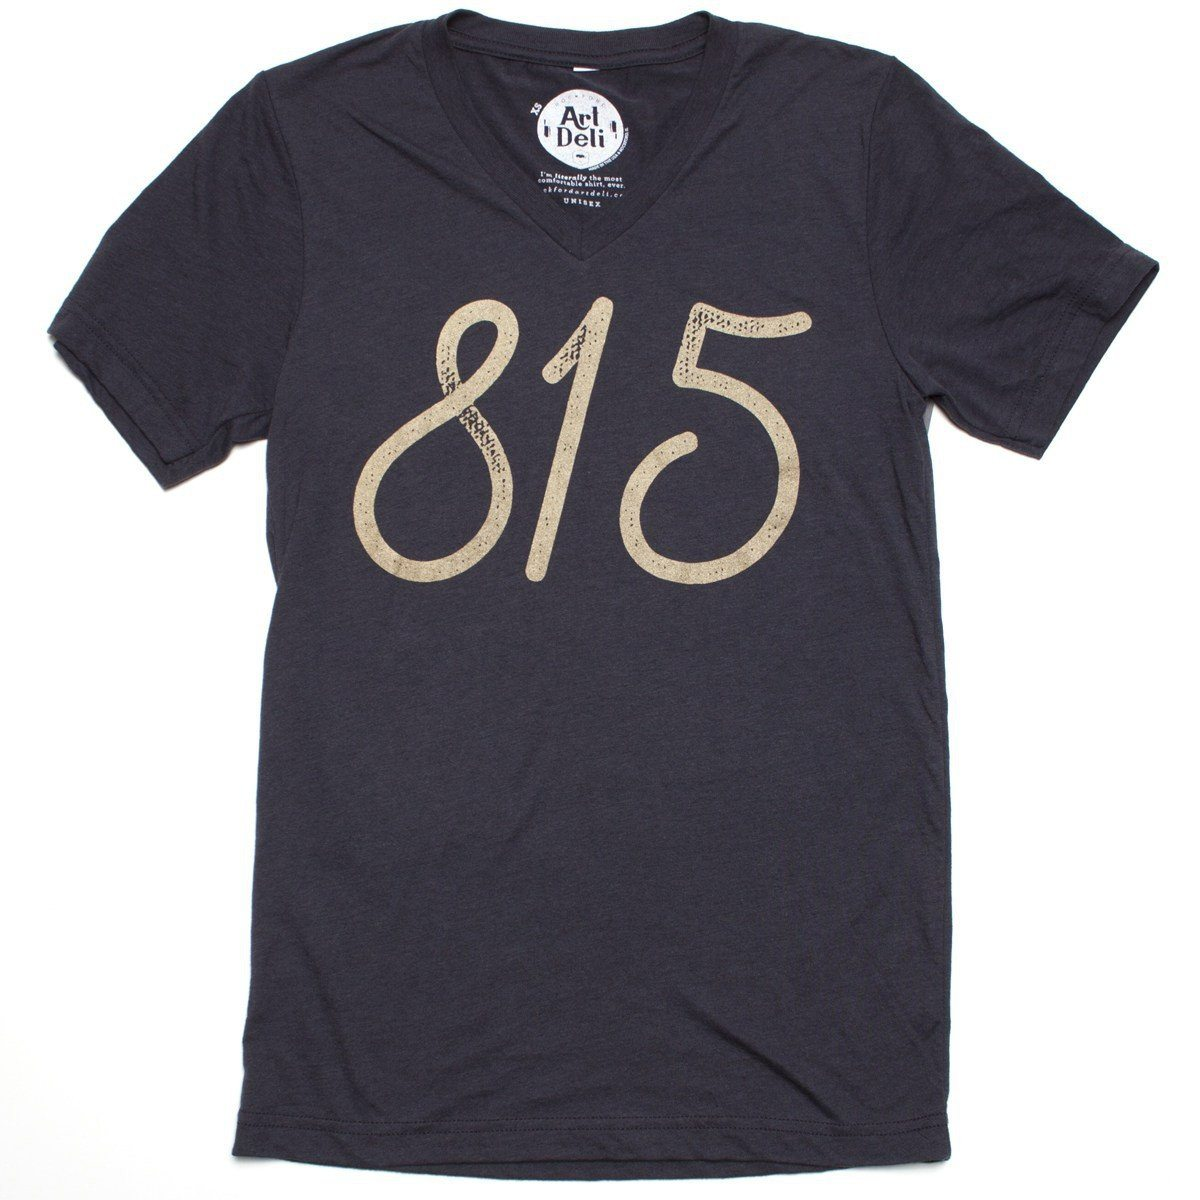 815 Gold V-Neck V-Neck Bella + Canvas